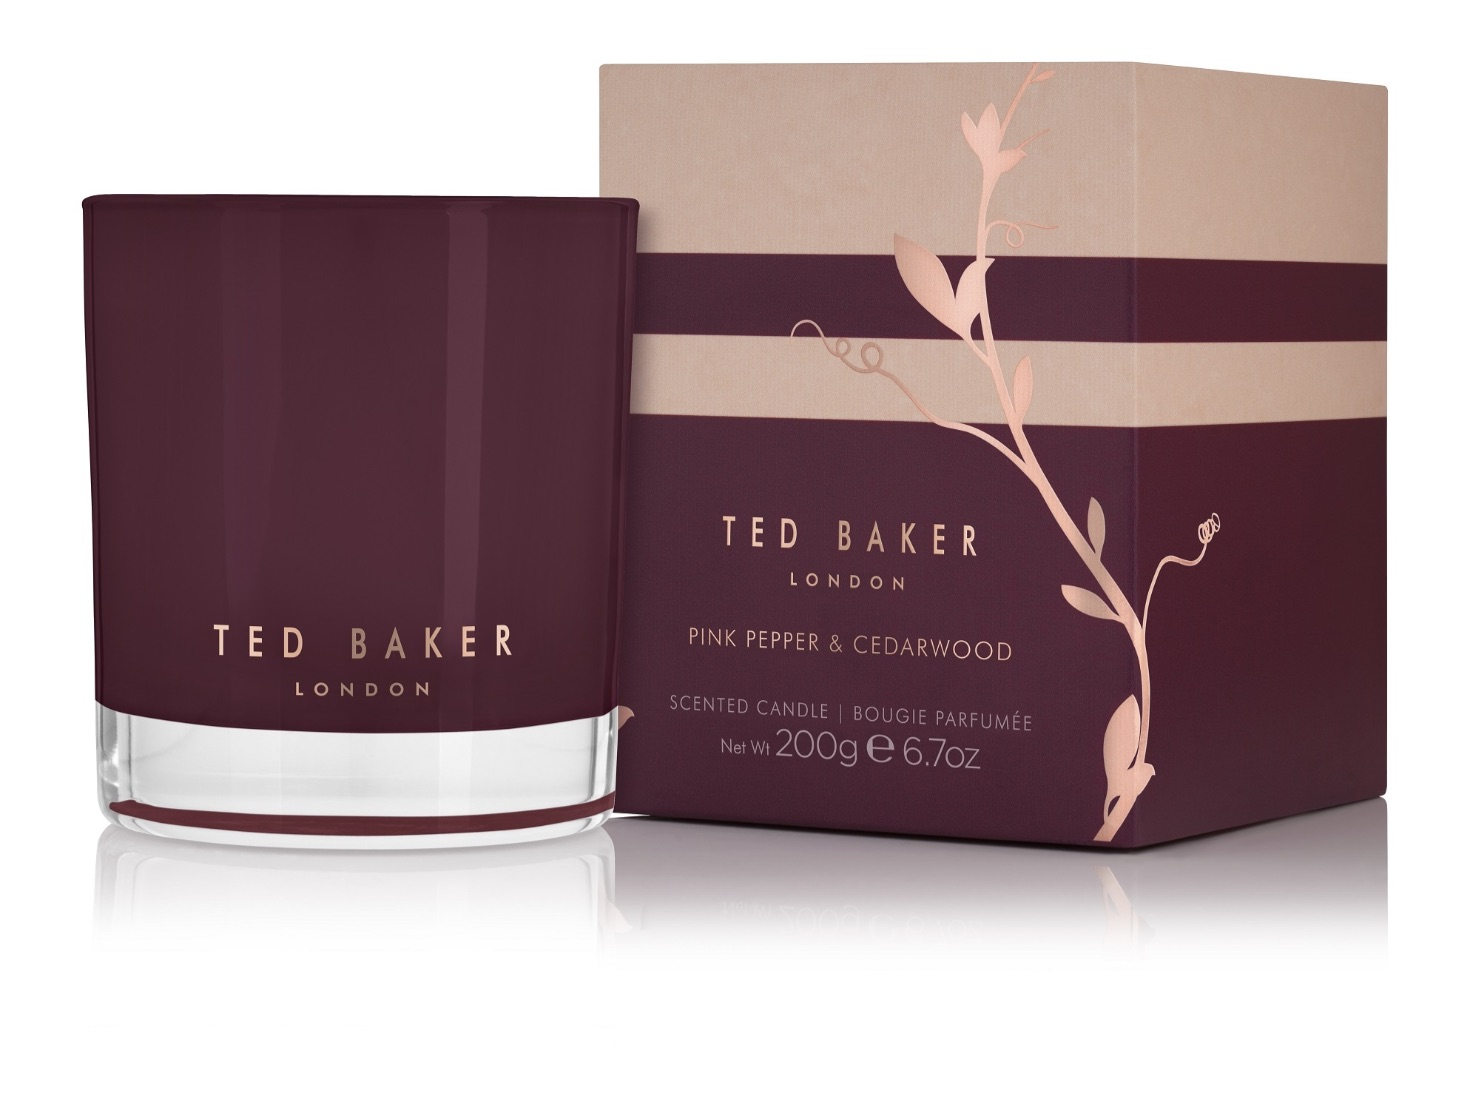 Ted Baker Residence Pink Pepper & Cedarwood Candle 200g